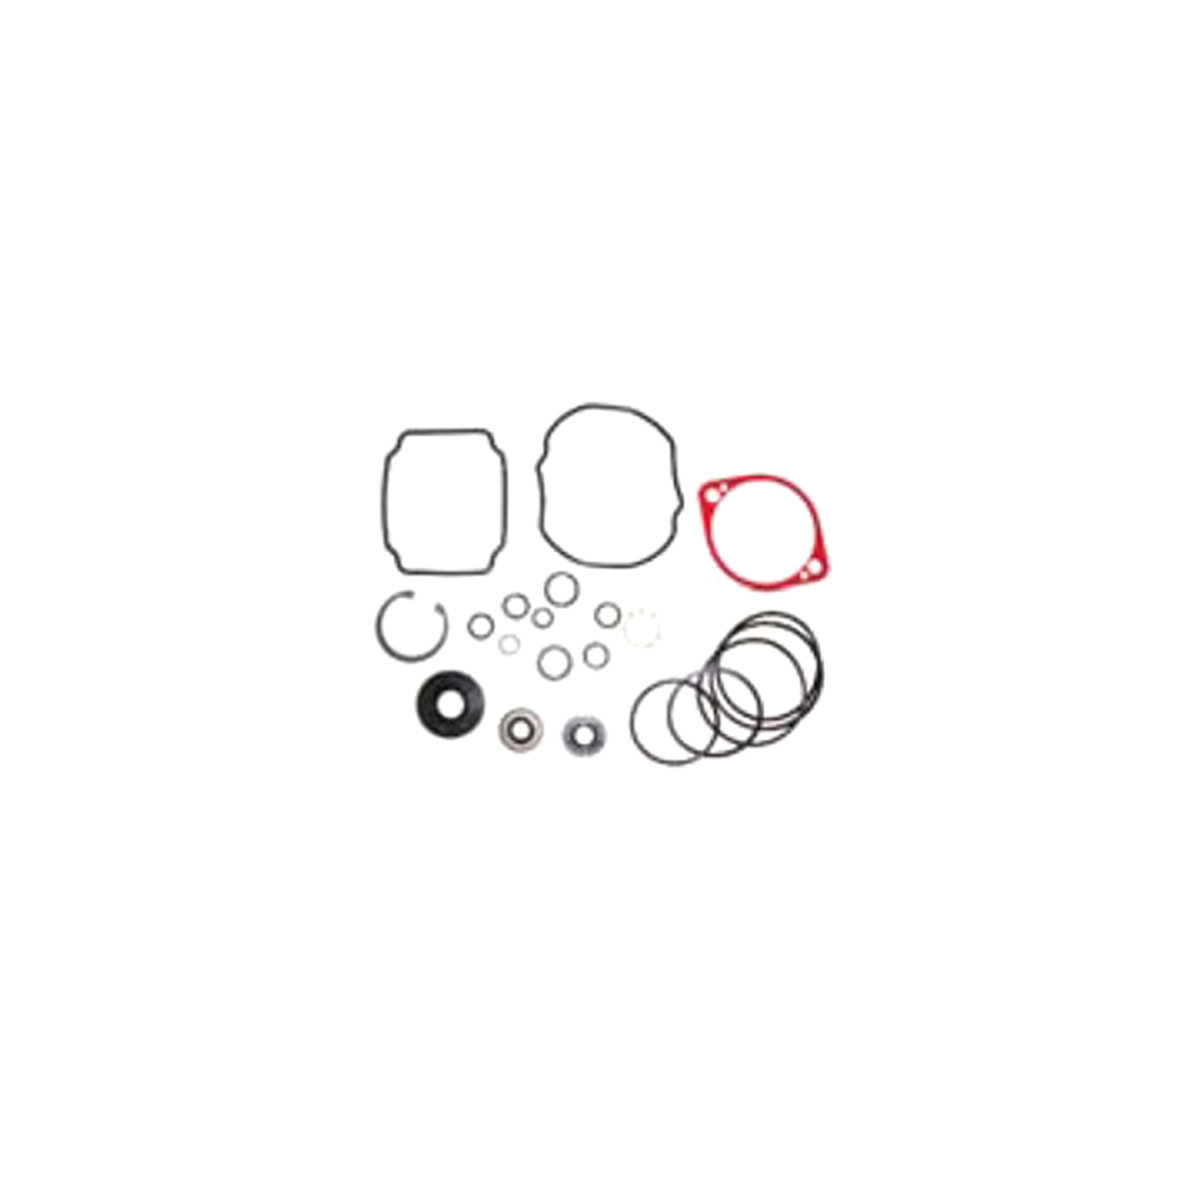 901166 Dixie Chopper Seal Kit 10A Pump Hydro-Gear